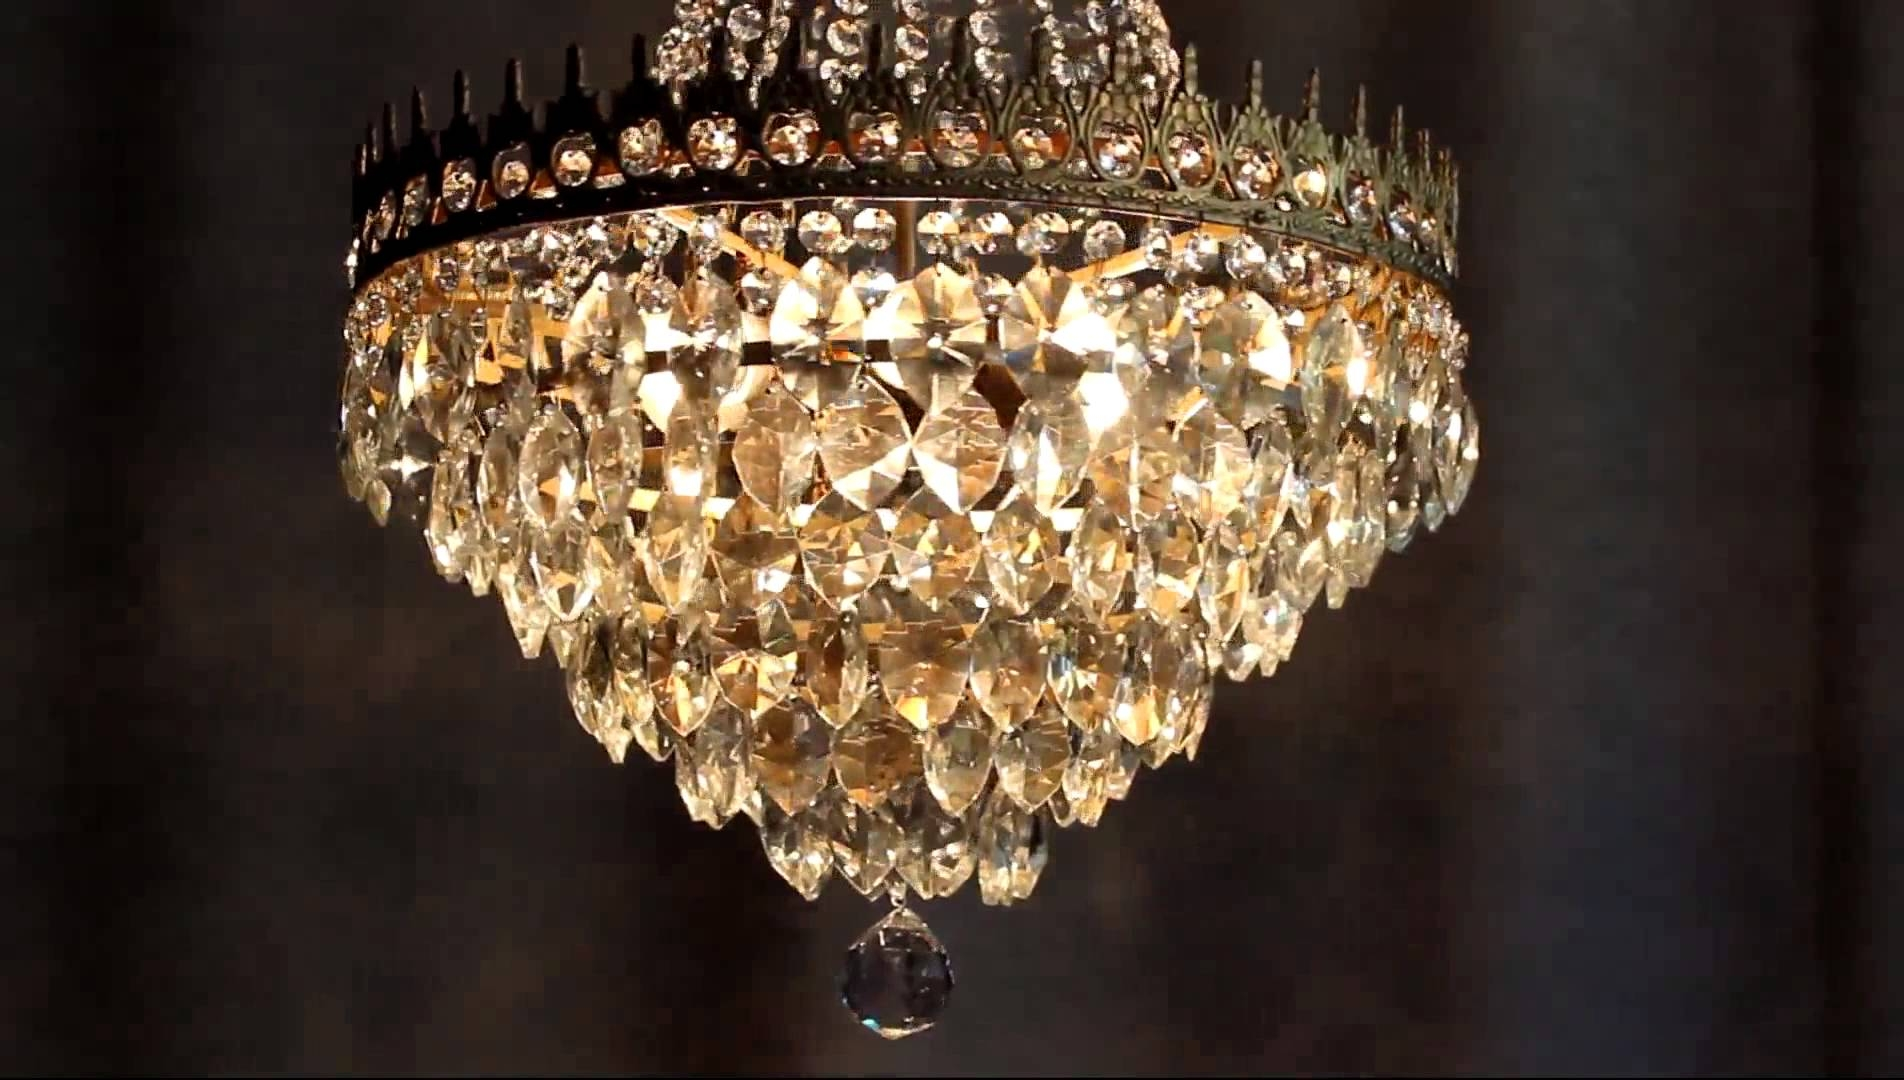 Huge Antique Luster Crystal Candelabra Chandelier Lighting Brass Within Huge Crystal Chandeliers (Image 8 of 15)